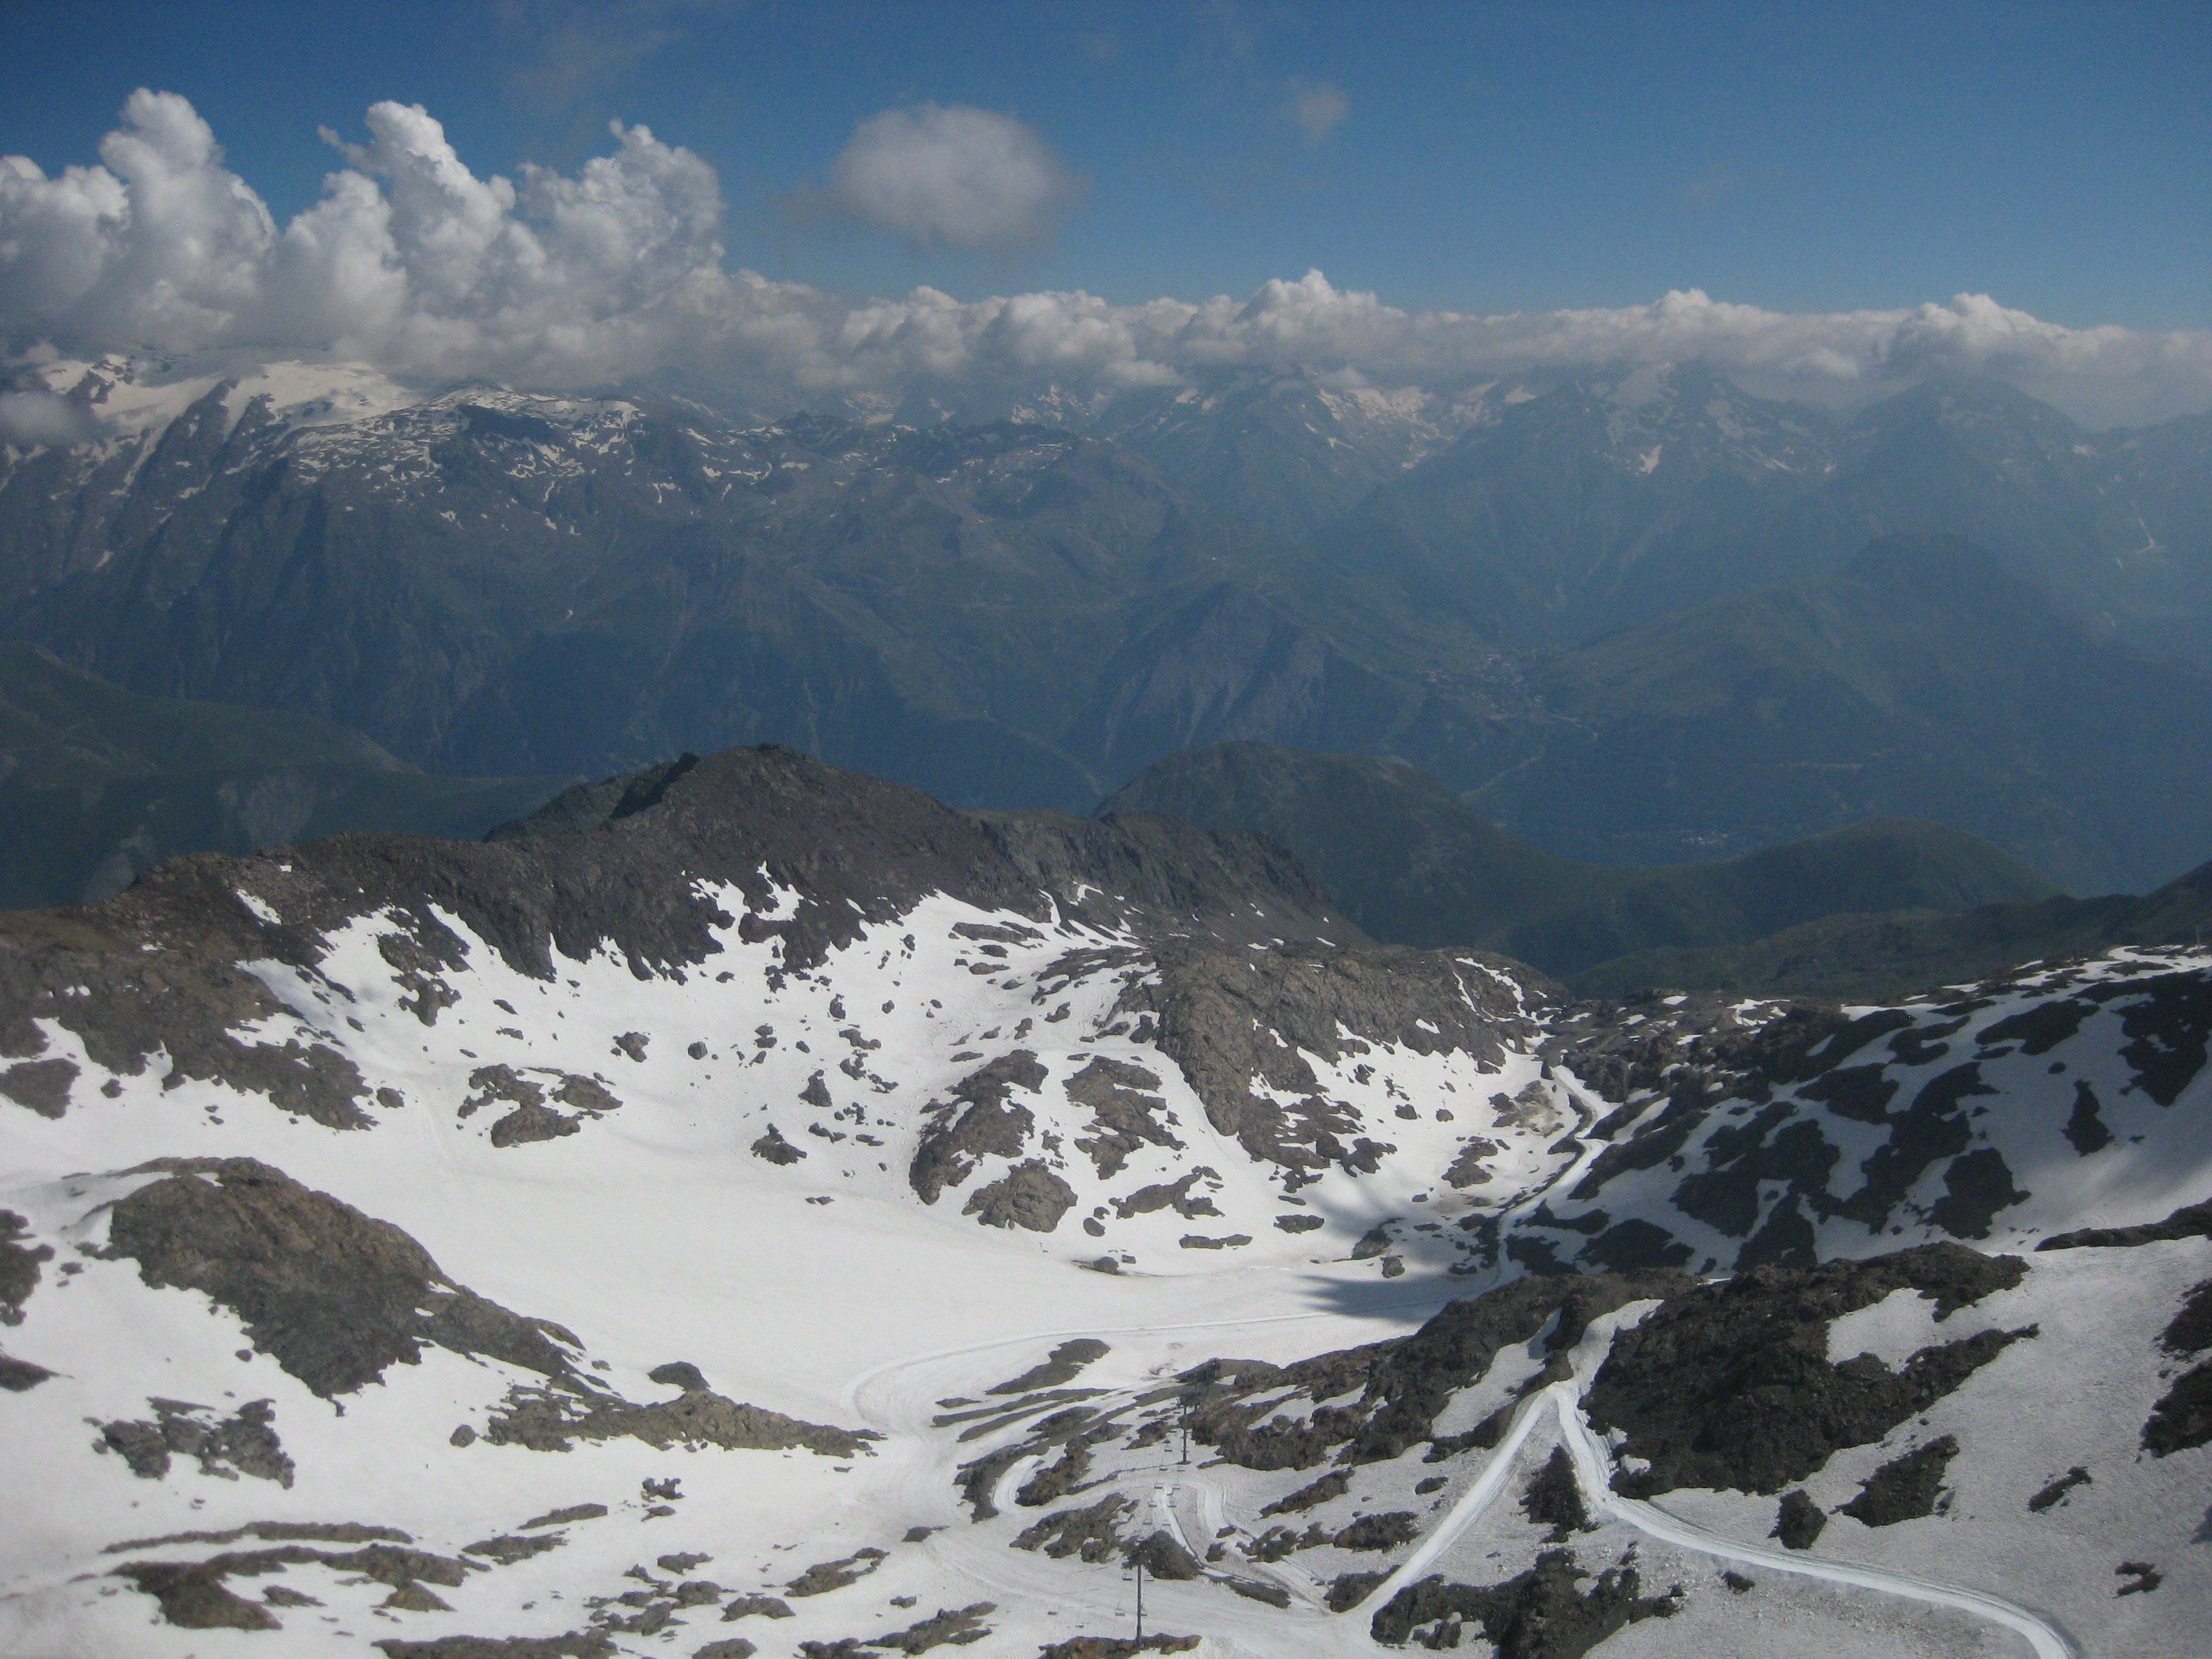 Sarennes glacier in July 2010 (taken byFLICKR.COM USER: SKITTLEDOG)